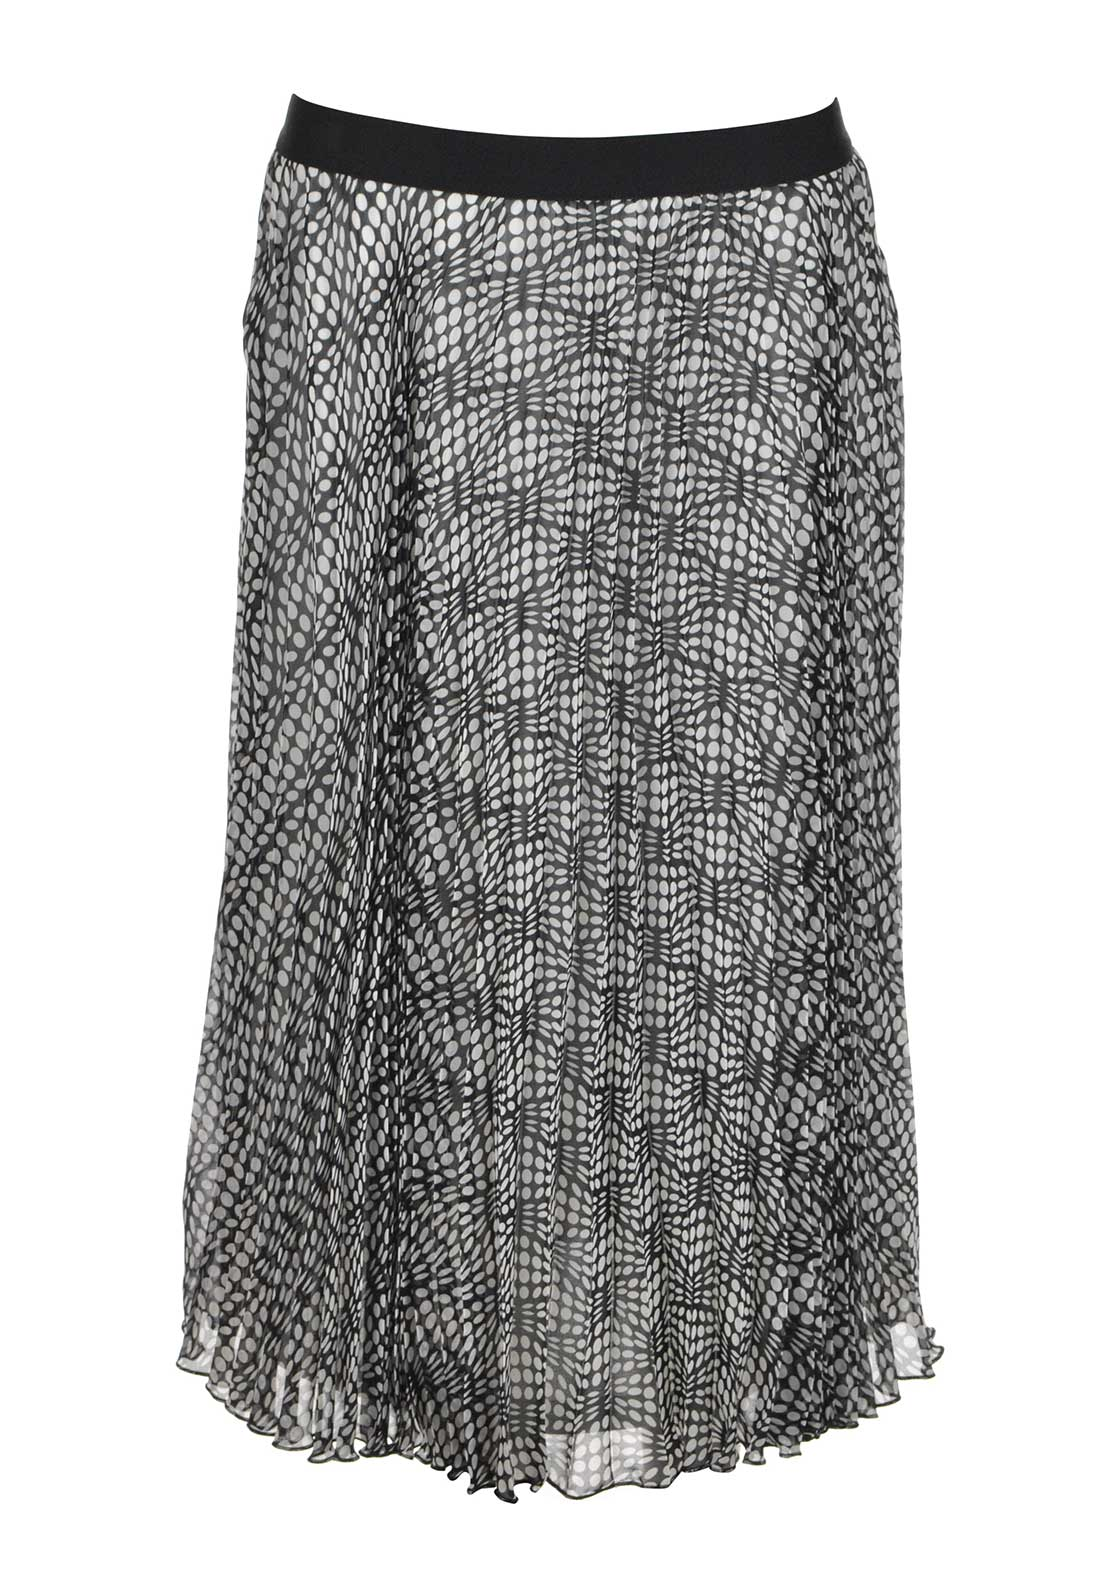 Gerry Weber Spot Print Pleated Midi Skirt, Black and White